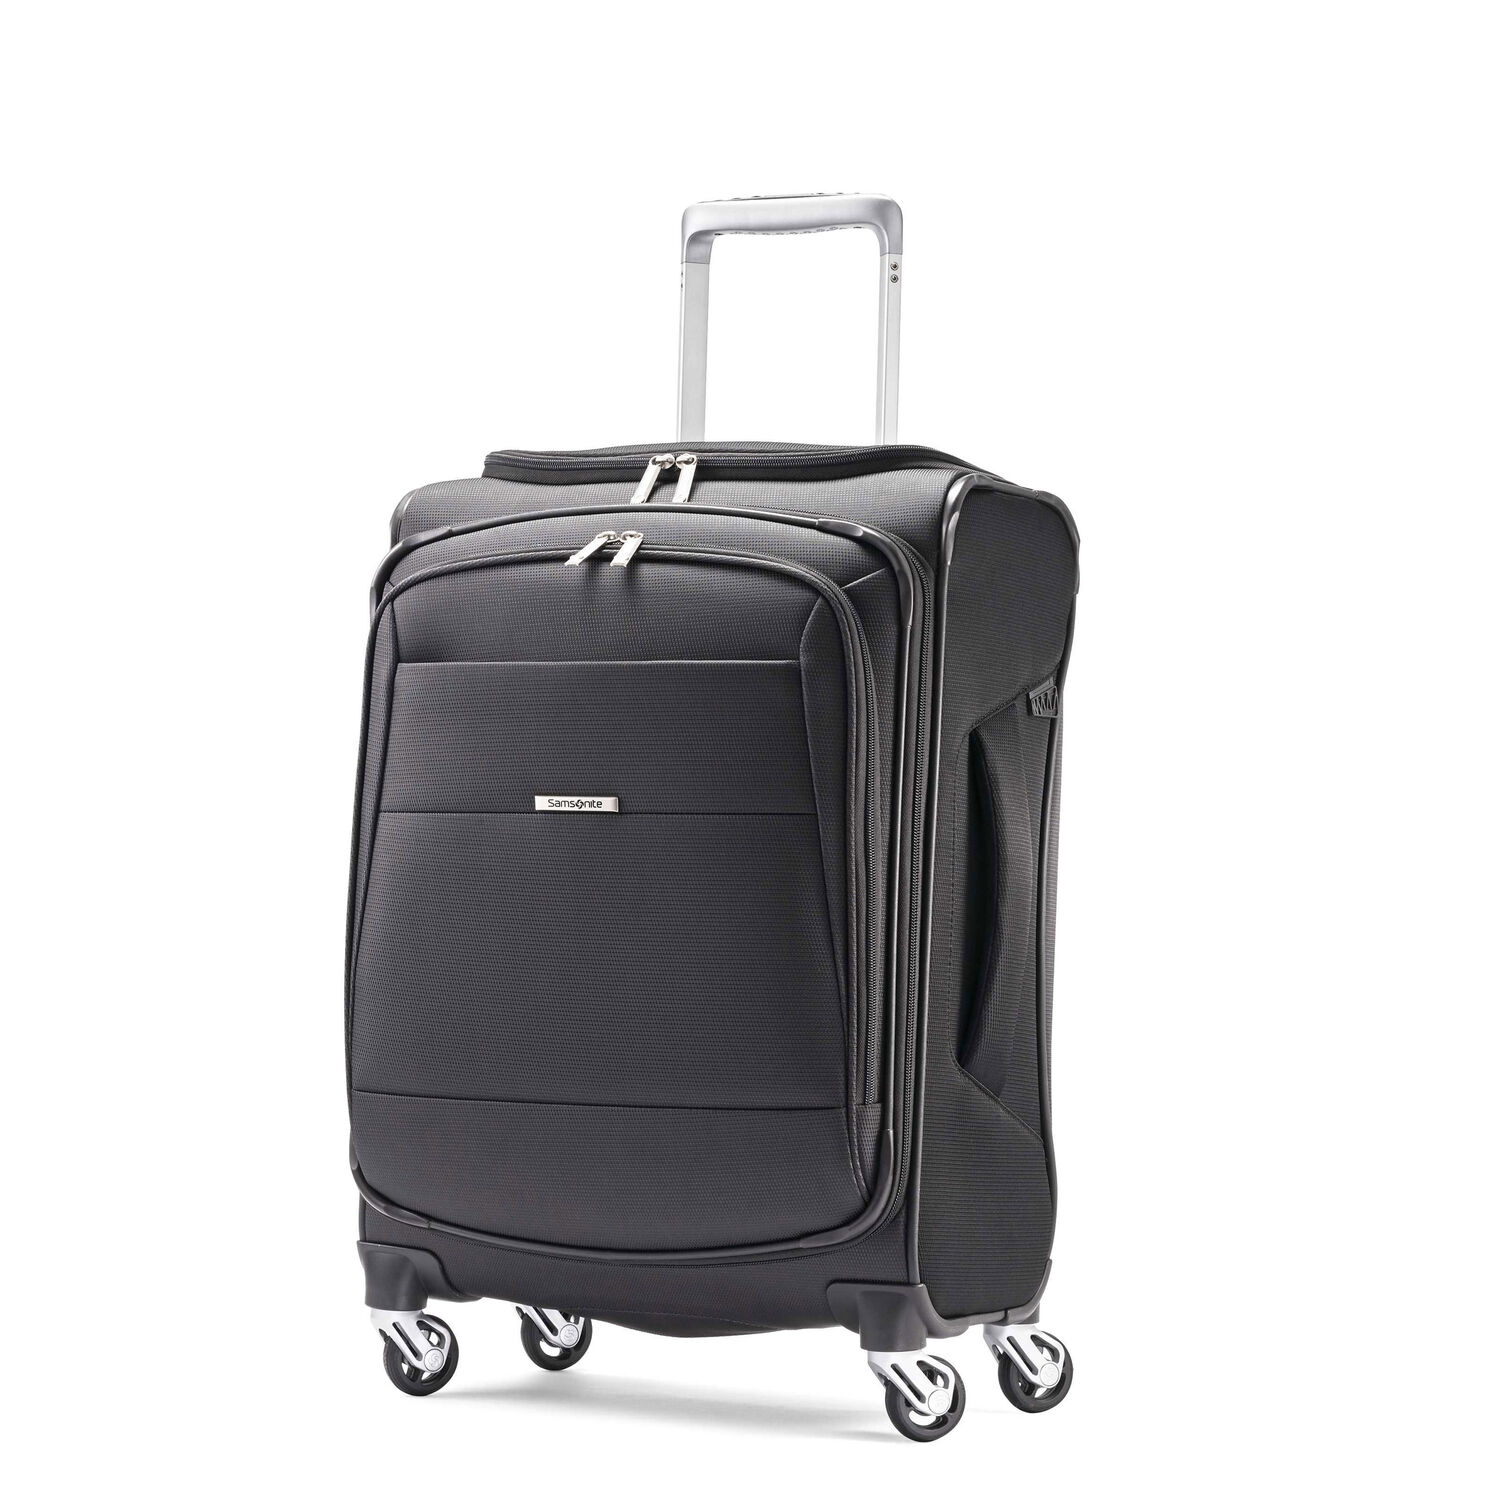 "Samsonite Eco-Nu 19"" Expandable Spinner in the color Granite/Midnight Black."